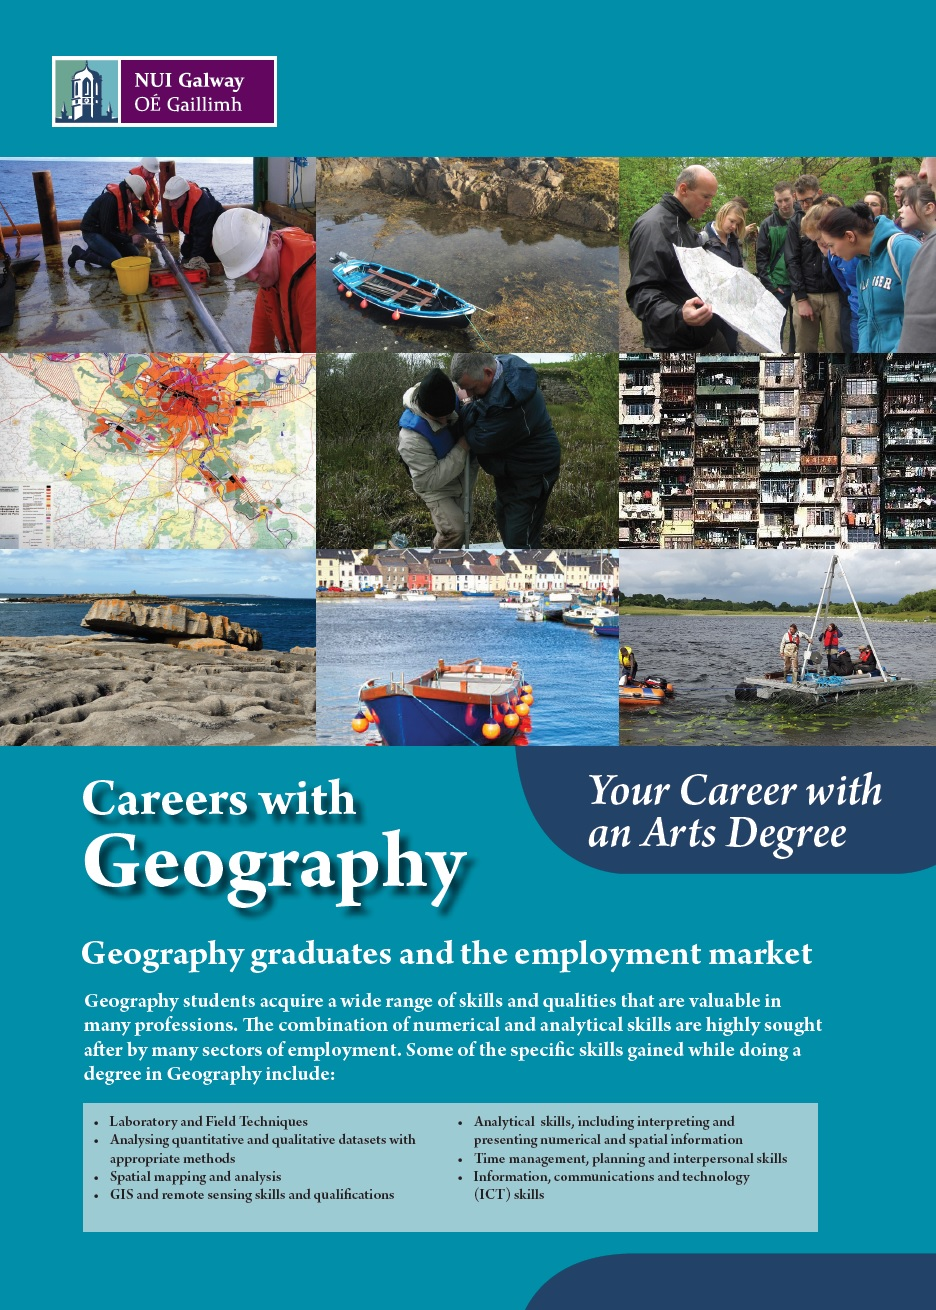 Careers in Geography  NUI Galway